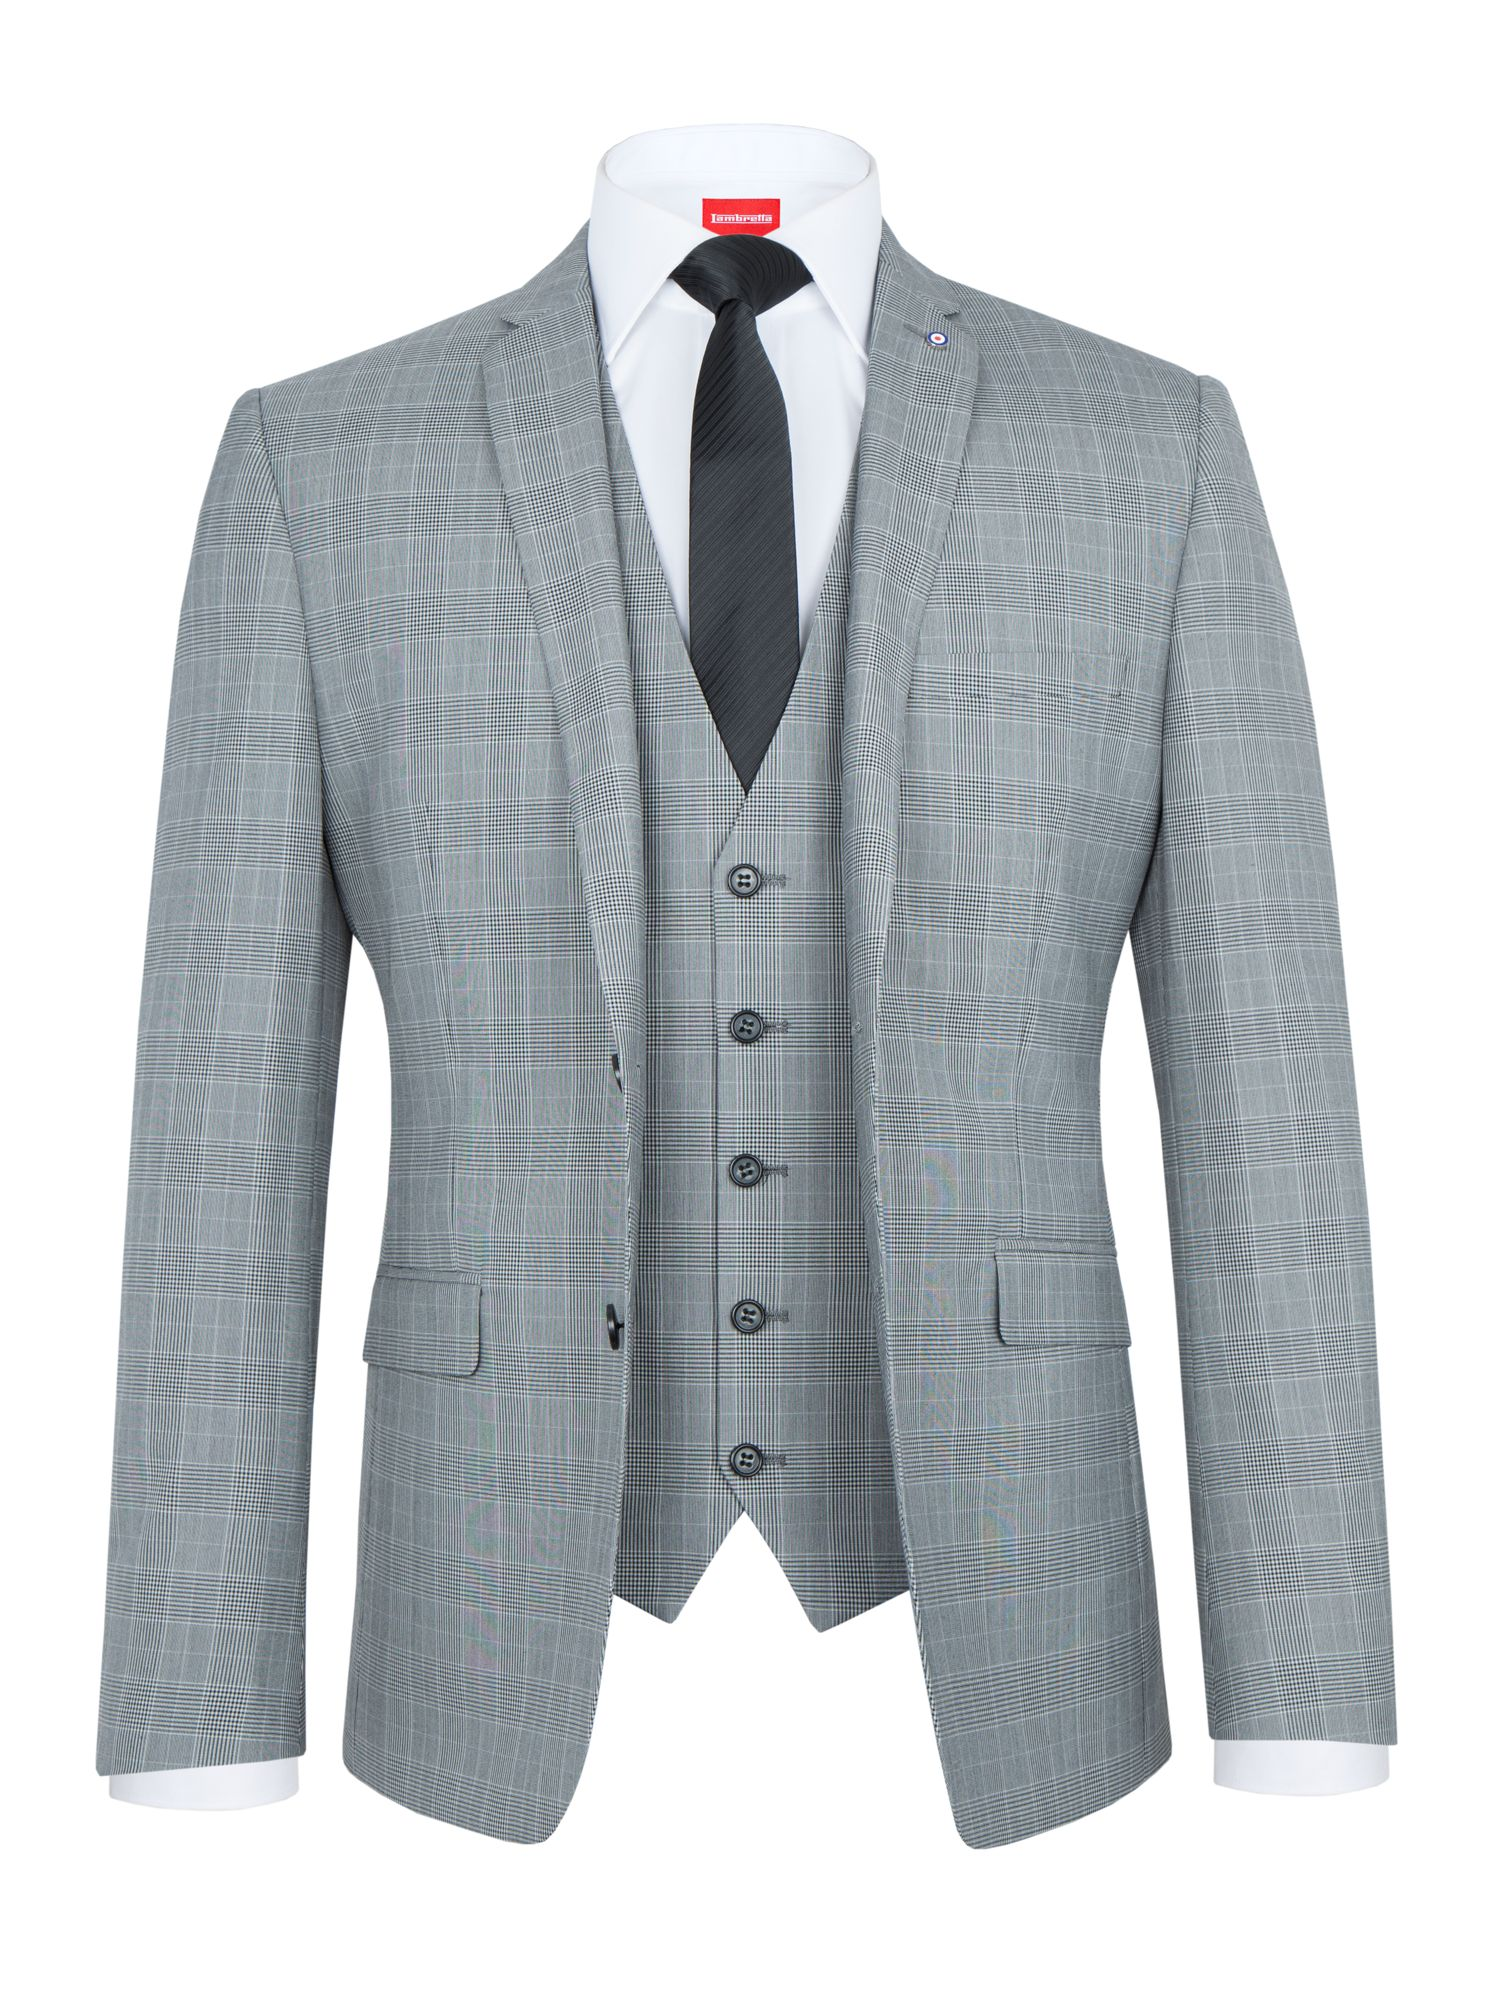 Men's Lambretta Check Slim-Fit Three Piece Suit, Grey